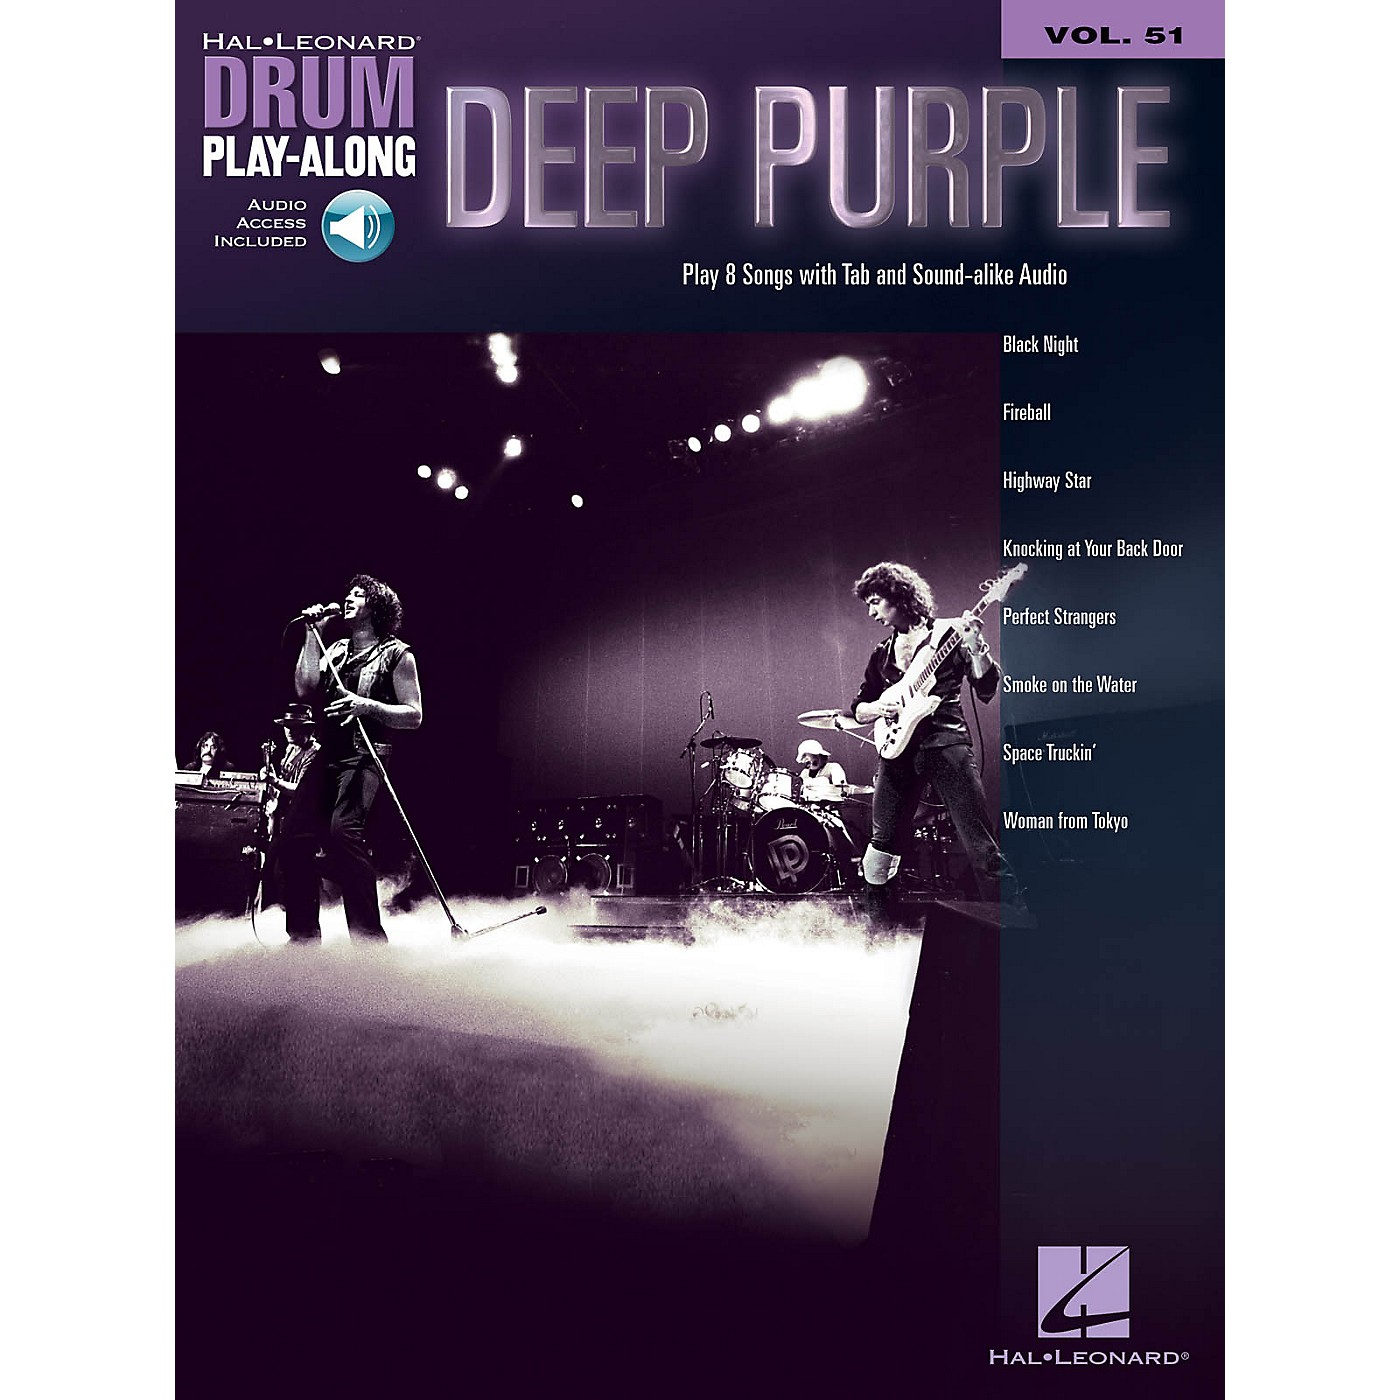 Hal Leonard Deep Purple Drum Play-Along Volume 51 Book/Audio Online thumbnail